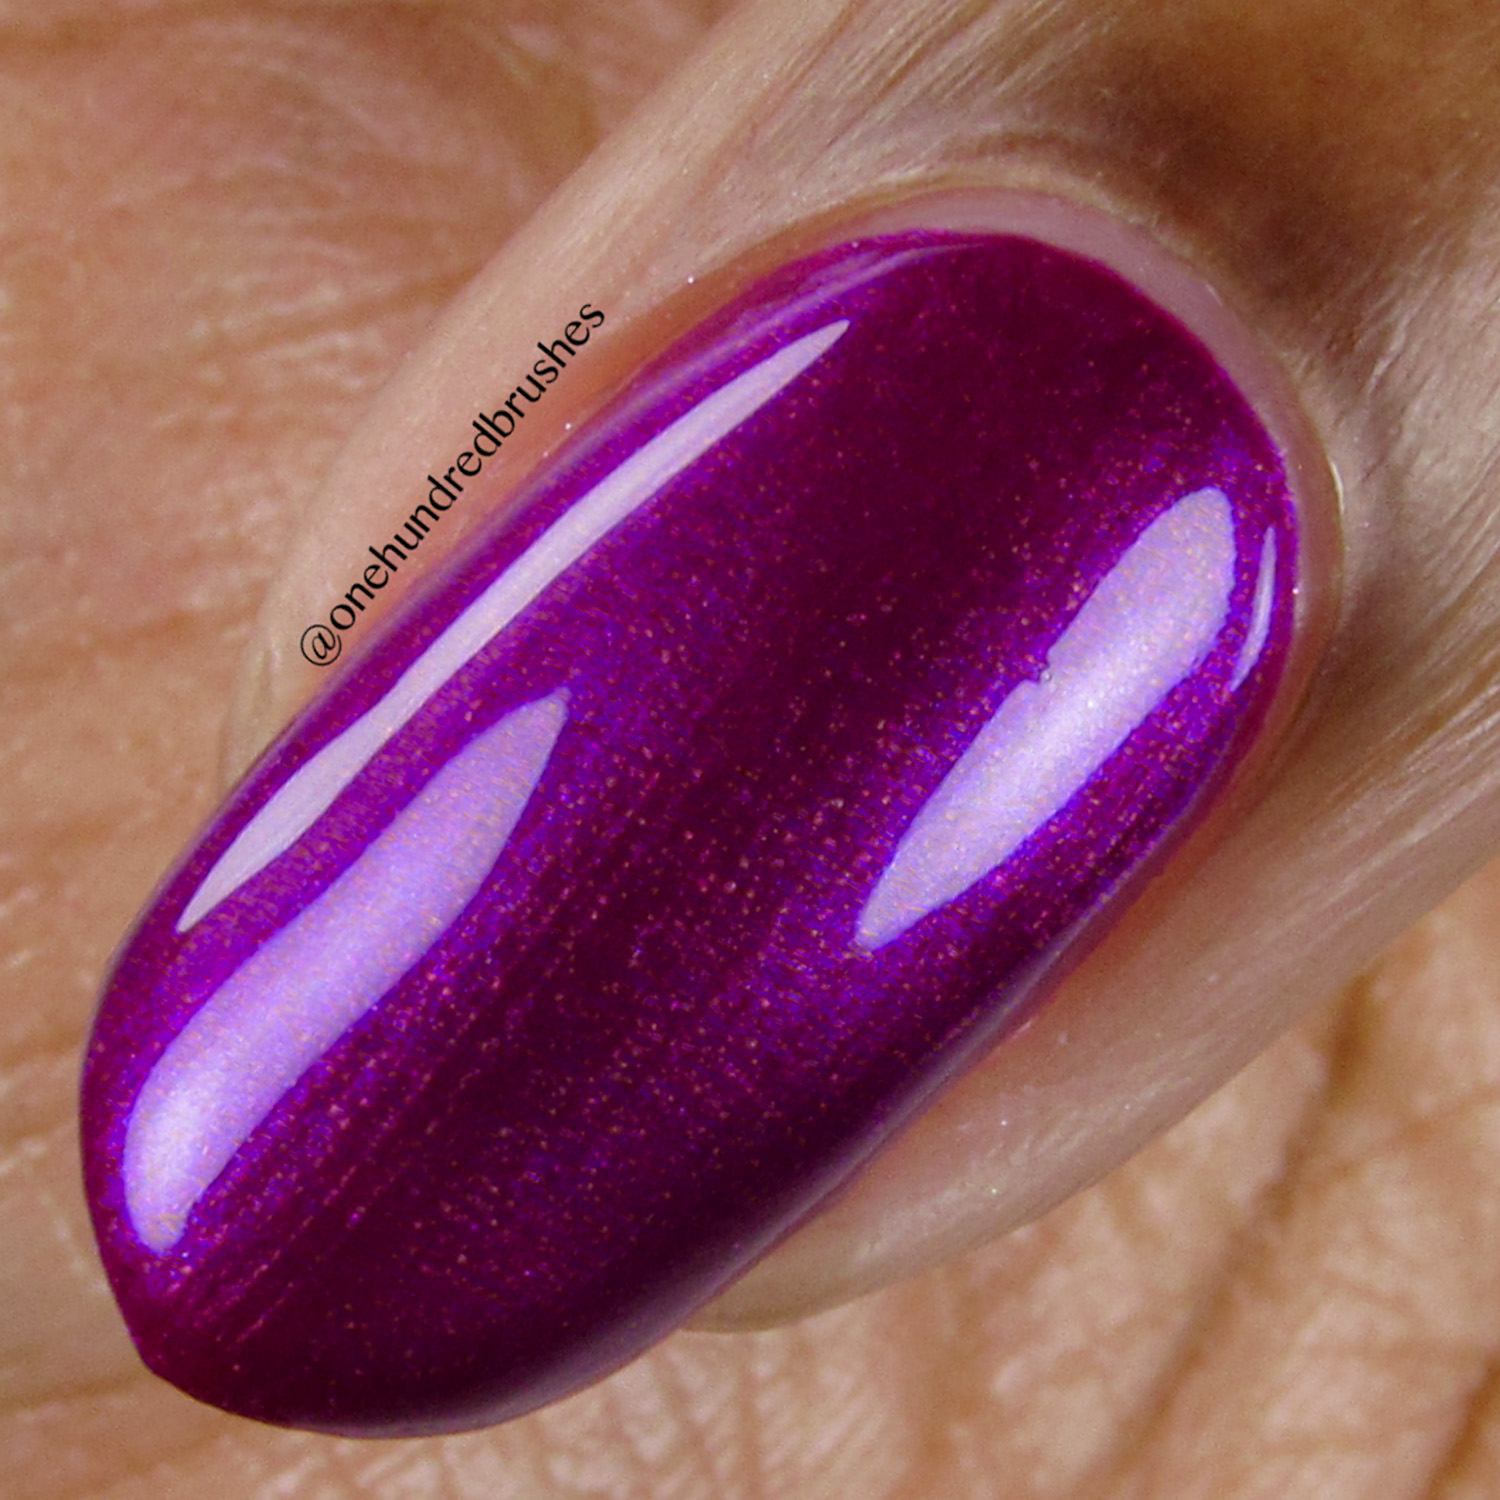 Conquest - macro - Vapid Lacquer - April 2018 - Spring release - purple - magenta shimmer